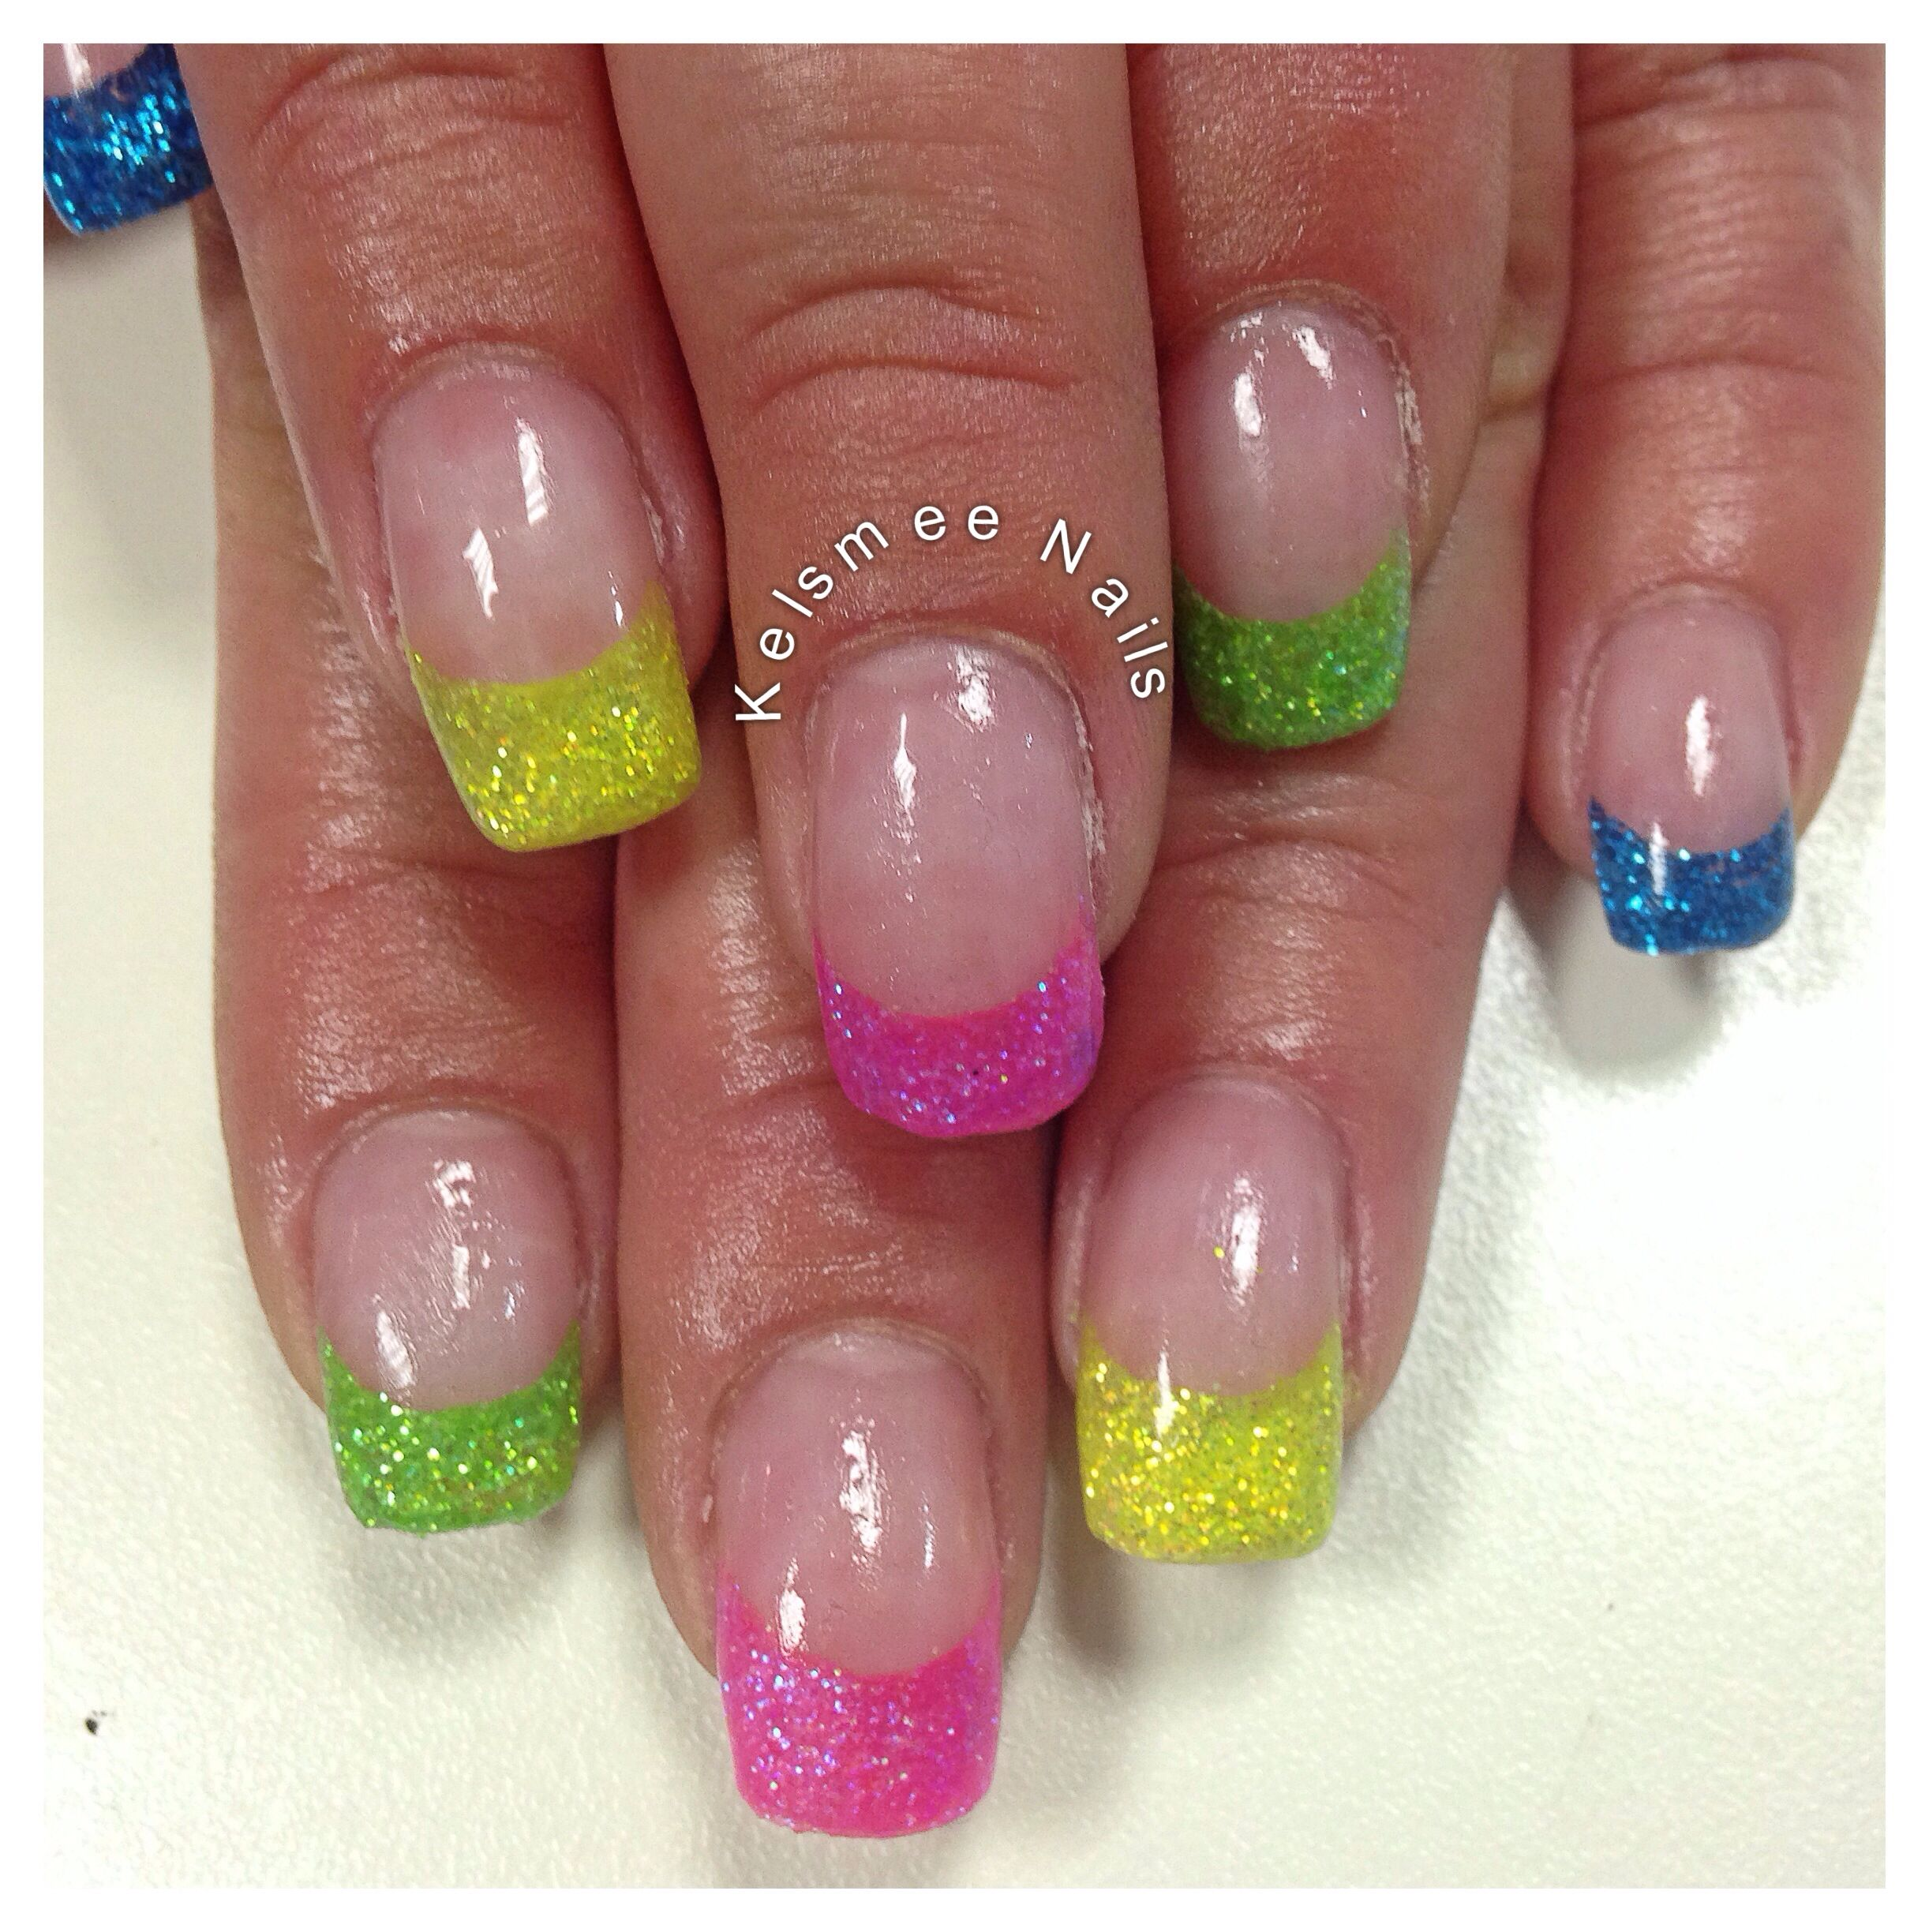 Young Nails French neon glitter | French nails, Nails ...